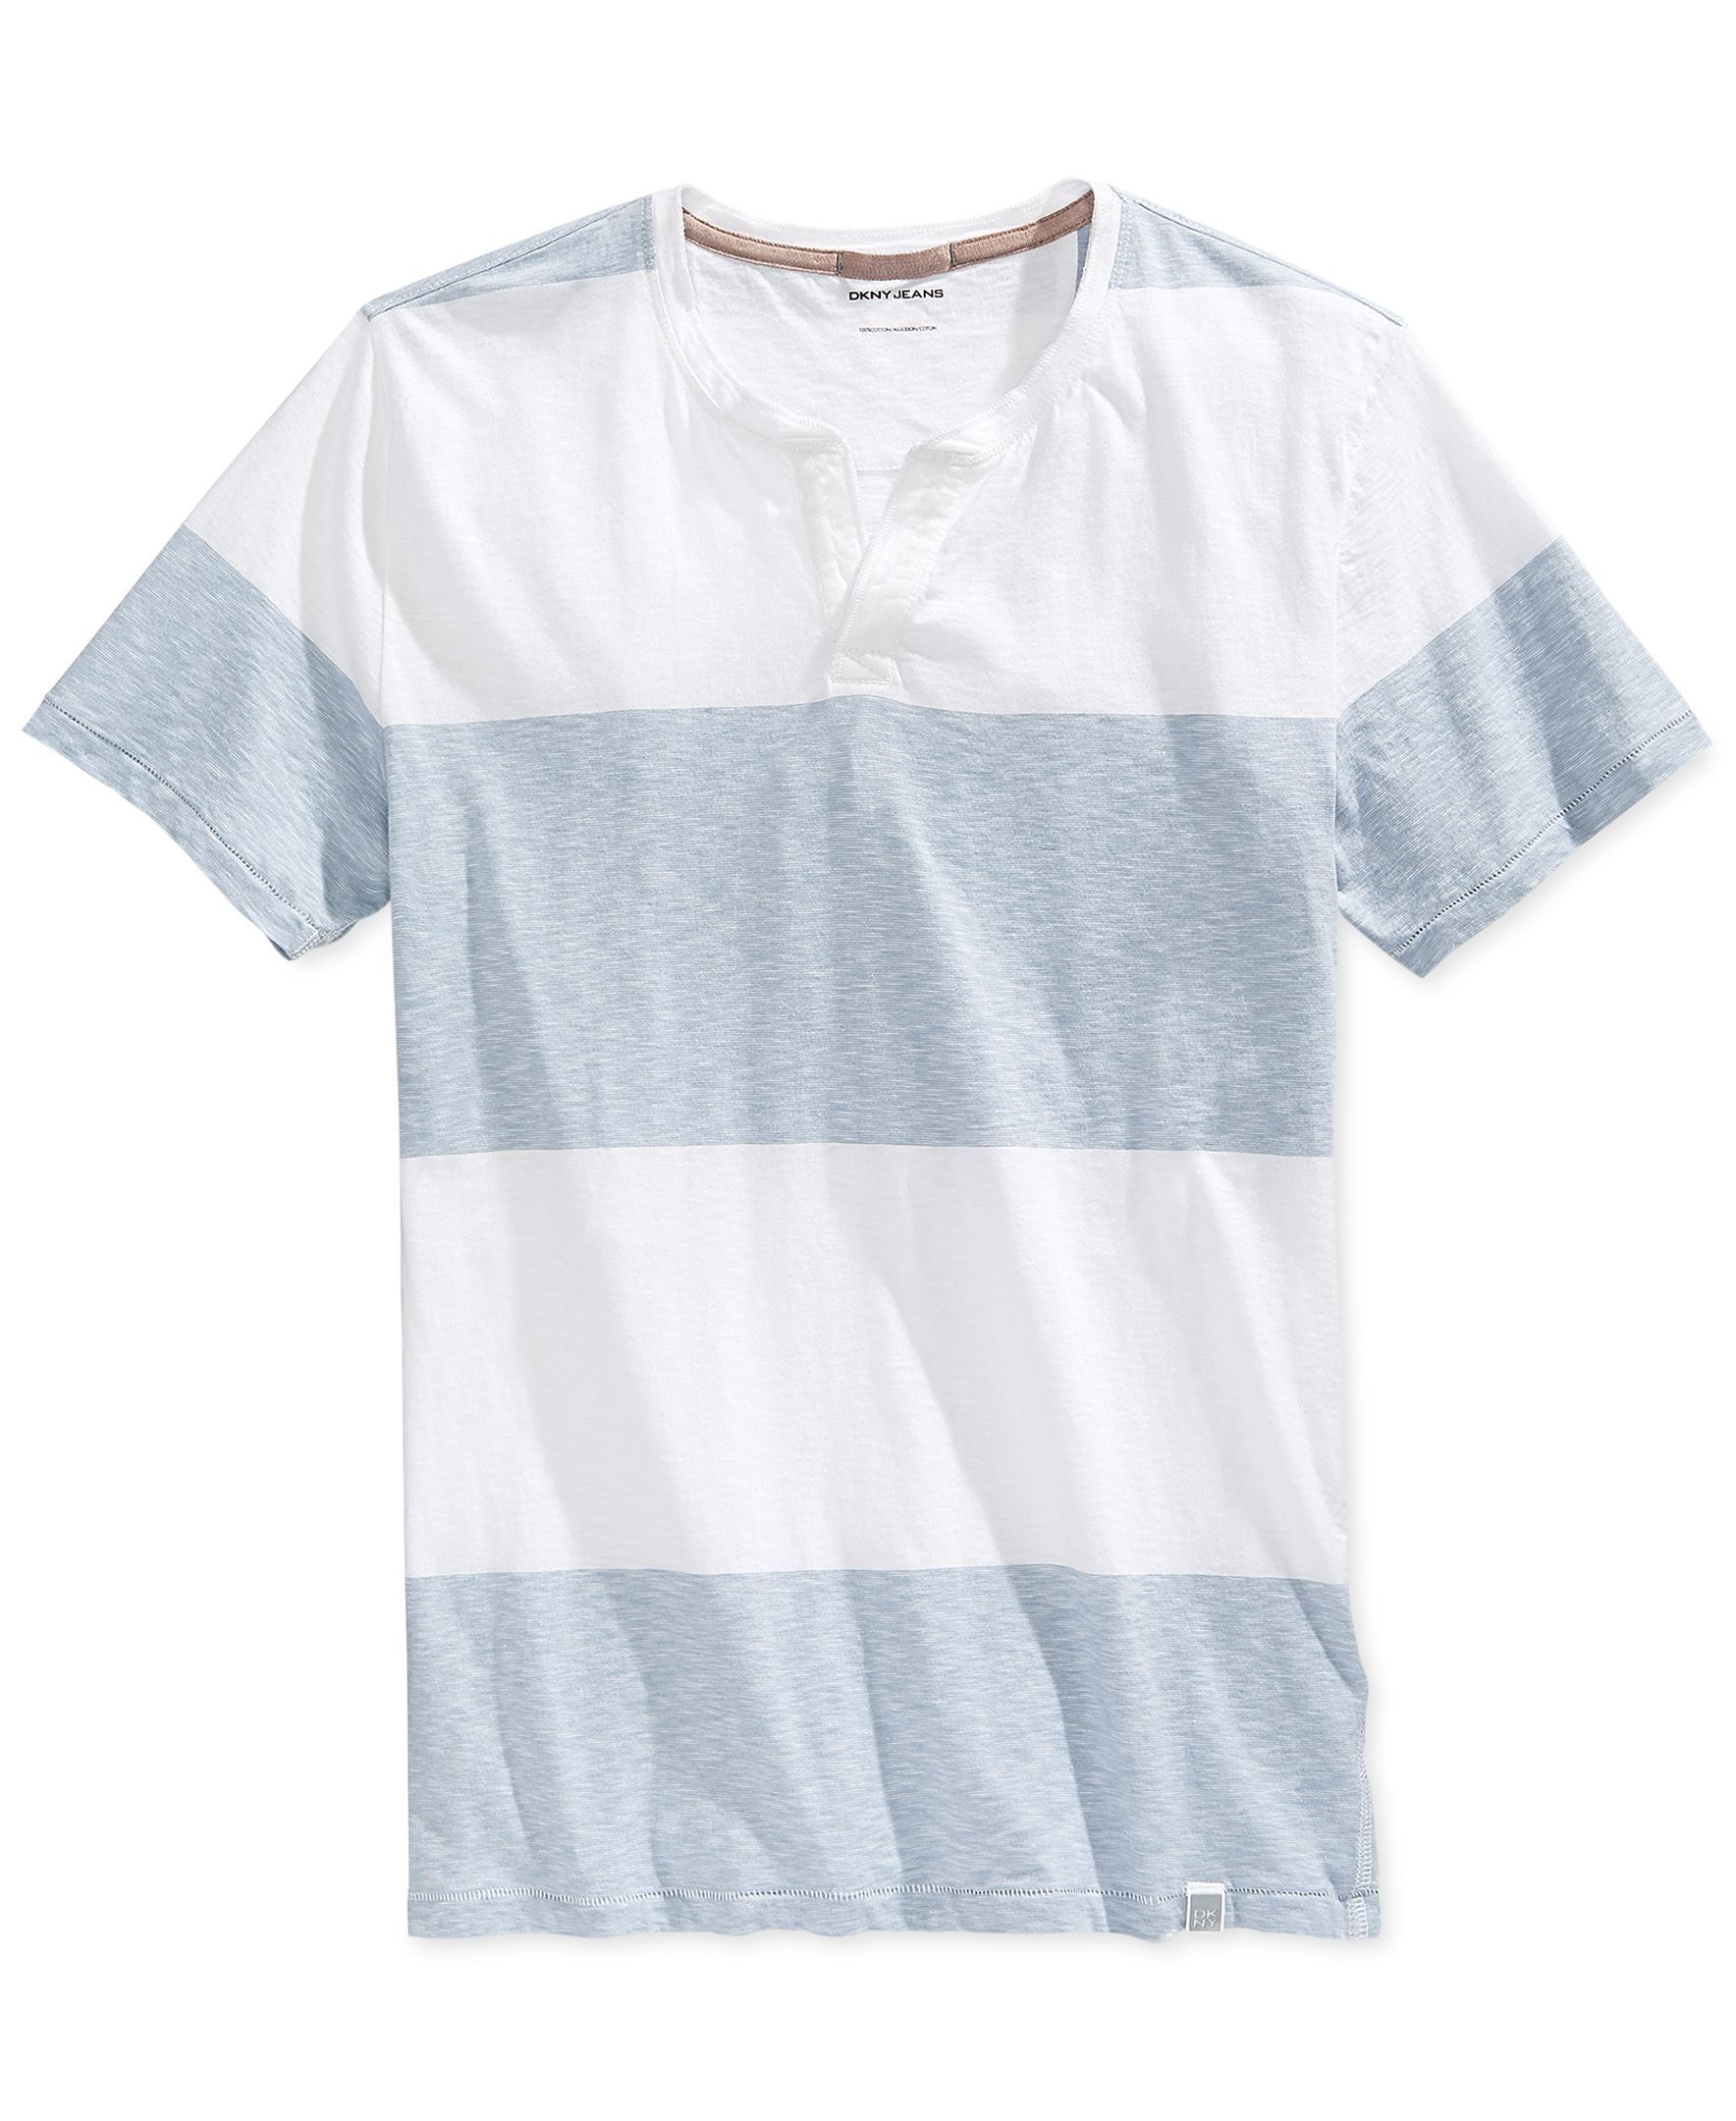 7af0d0a2 DKNY Jeans Striped T-Shirt | Products | Striped jeans, Shirts, Dkny ...